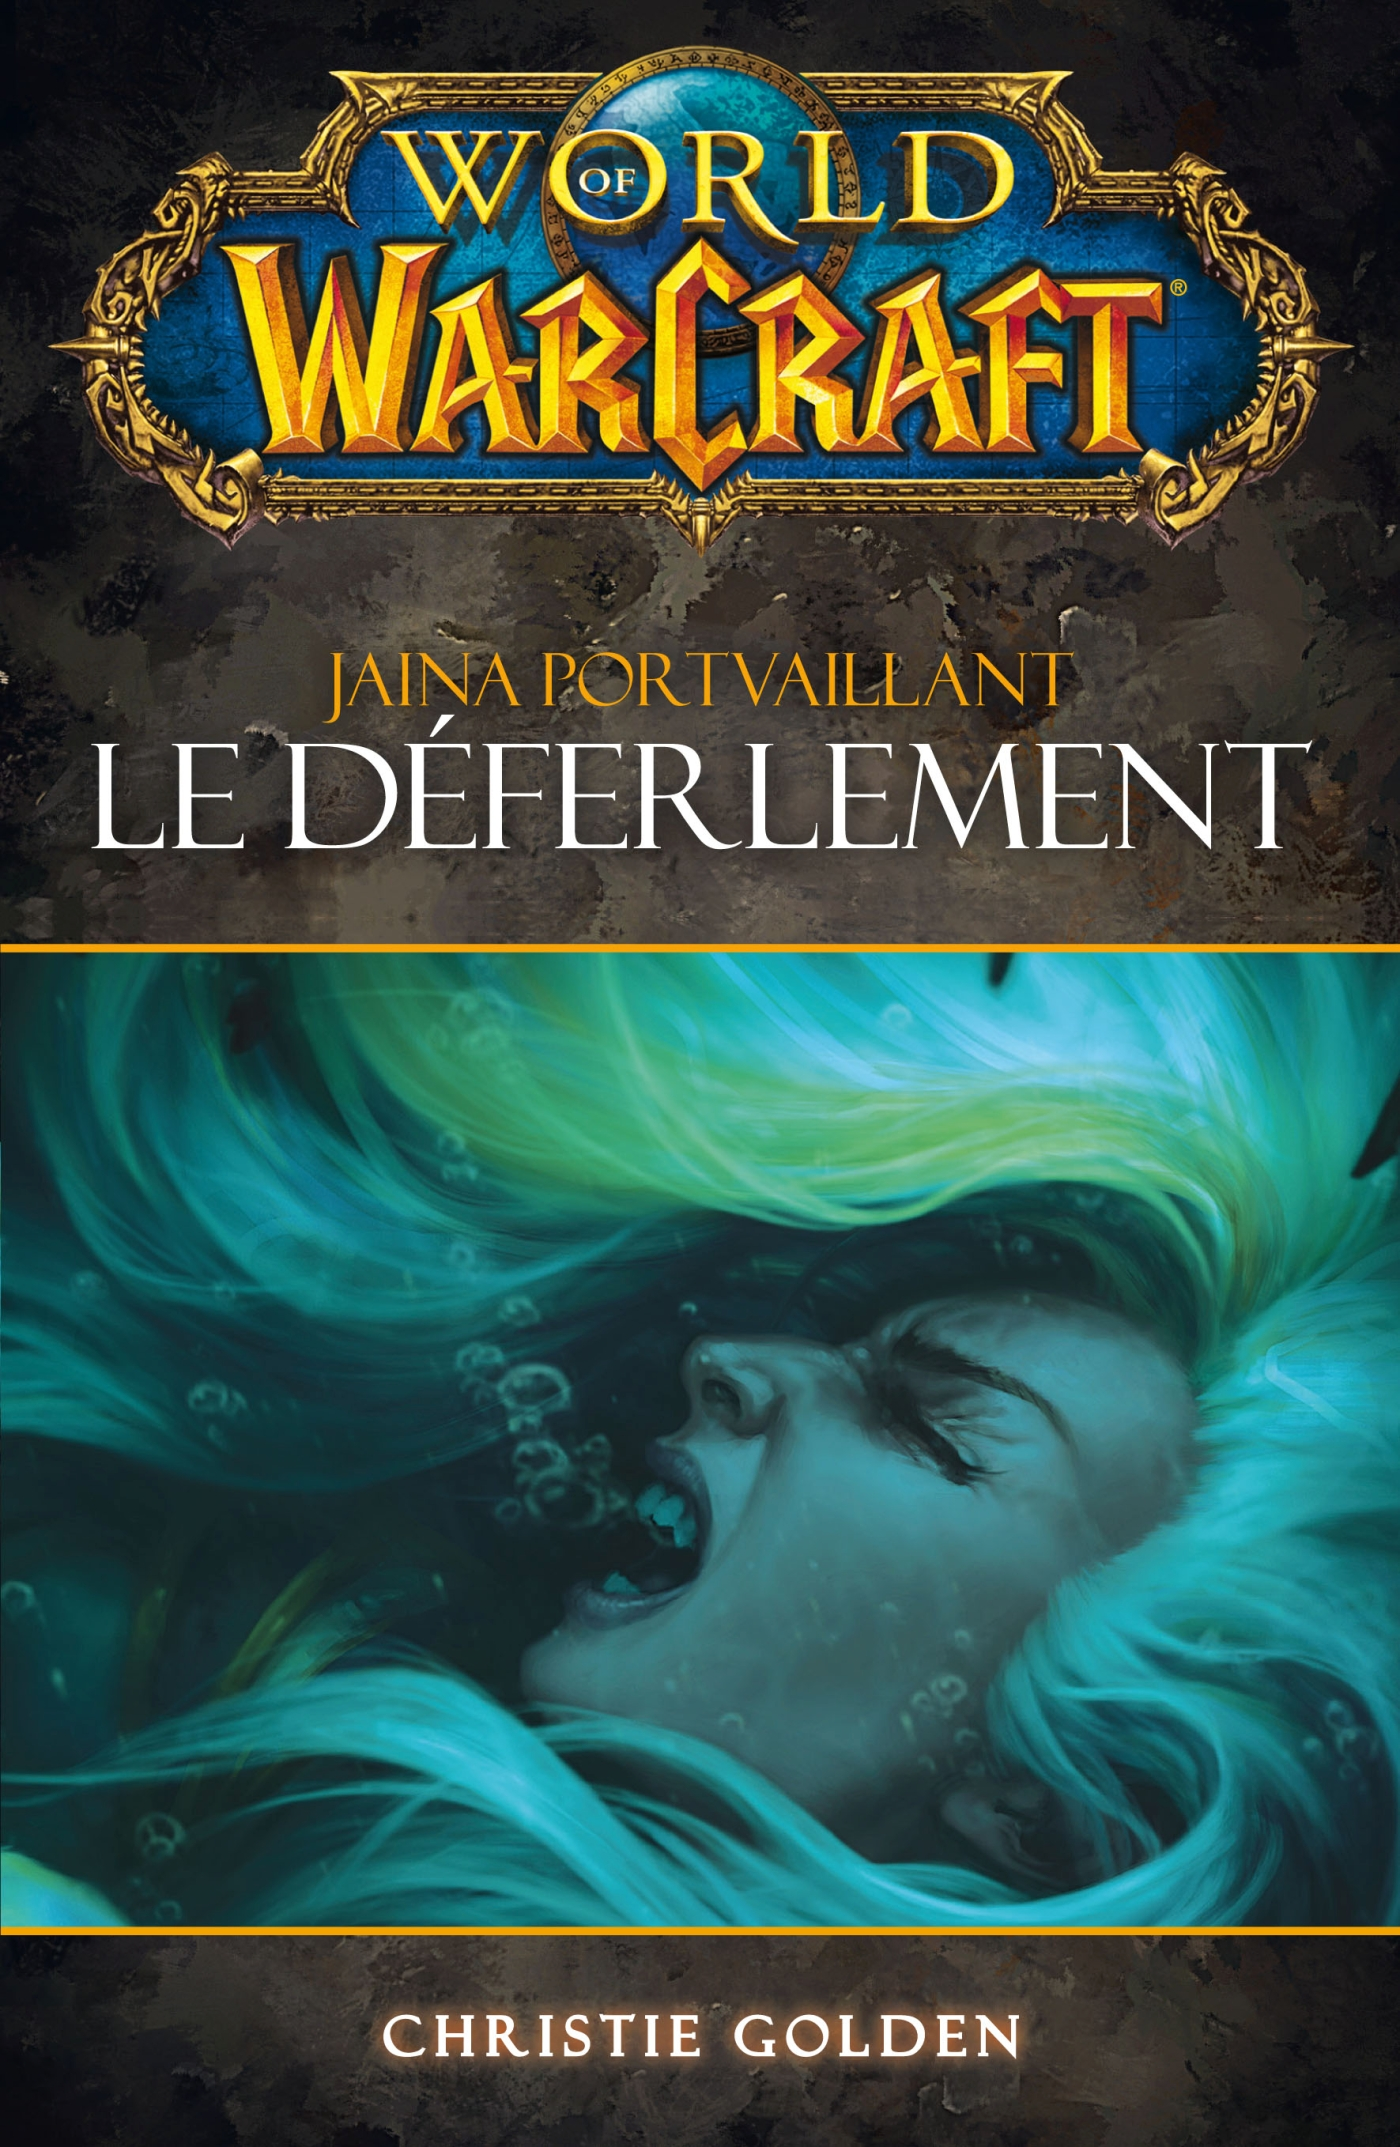 World of Warcraft - Le déferlement